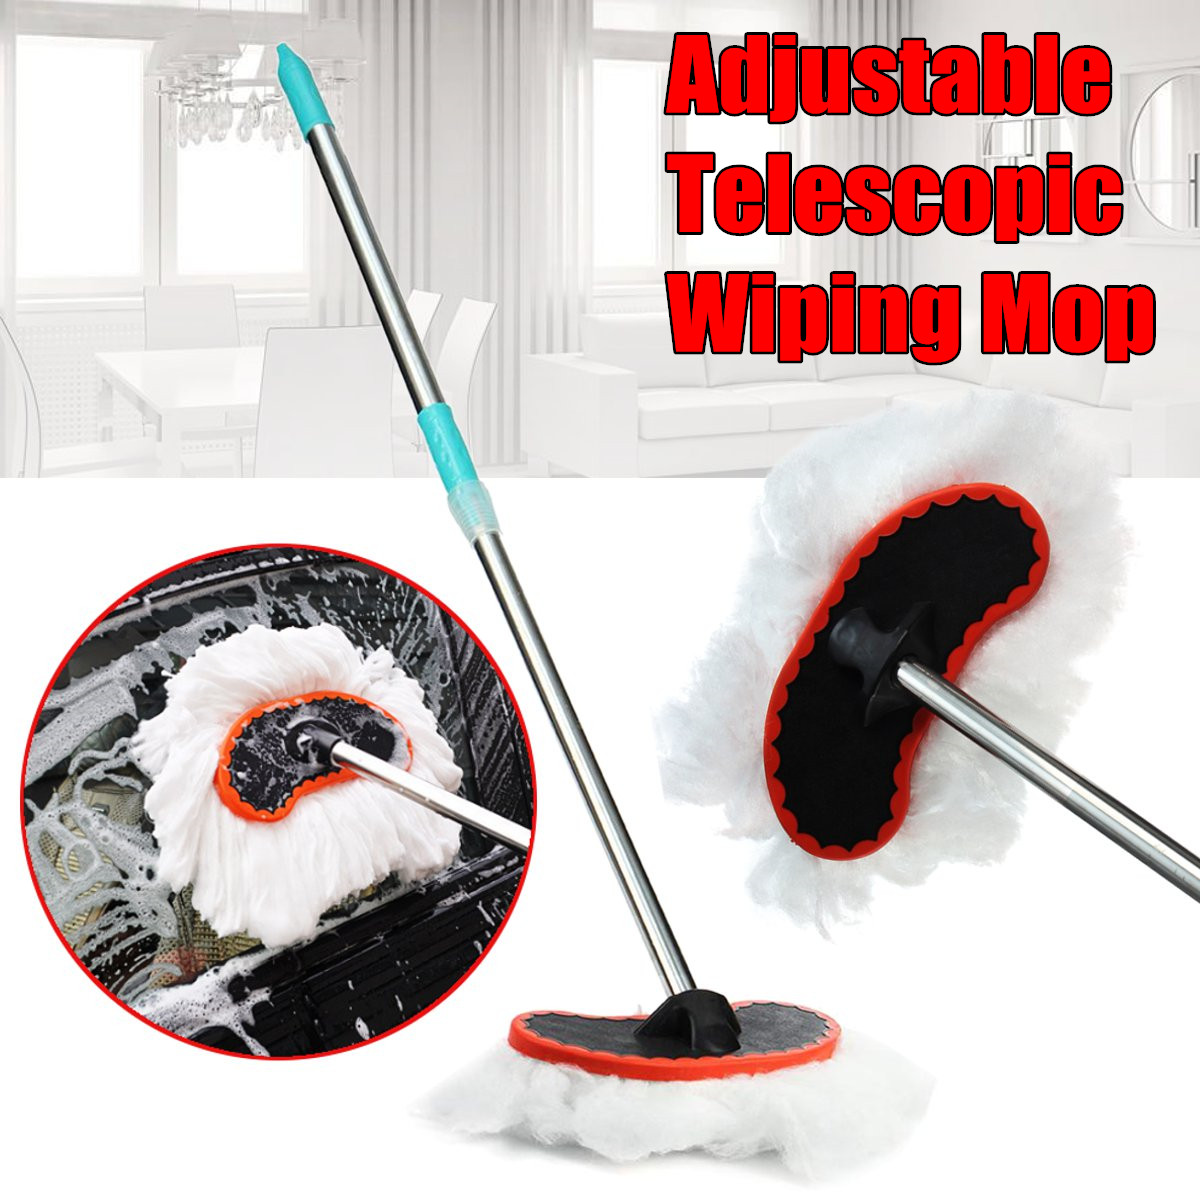 Car Wash Brush Adjustable Telescopic Wiping Mop Cleaning Tool Car Supplies